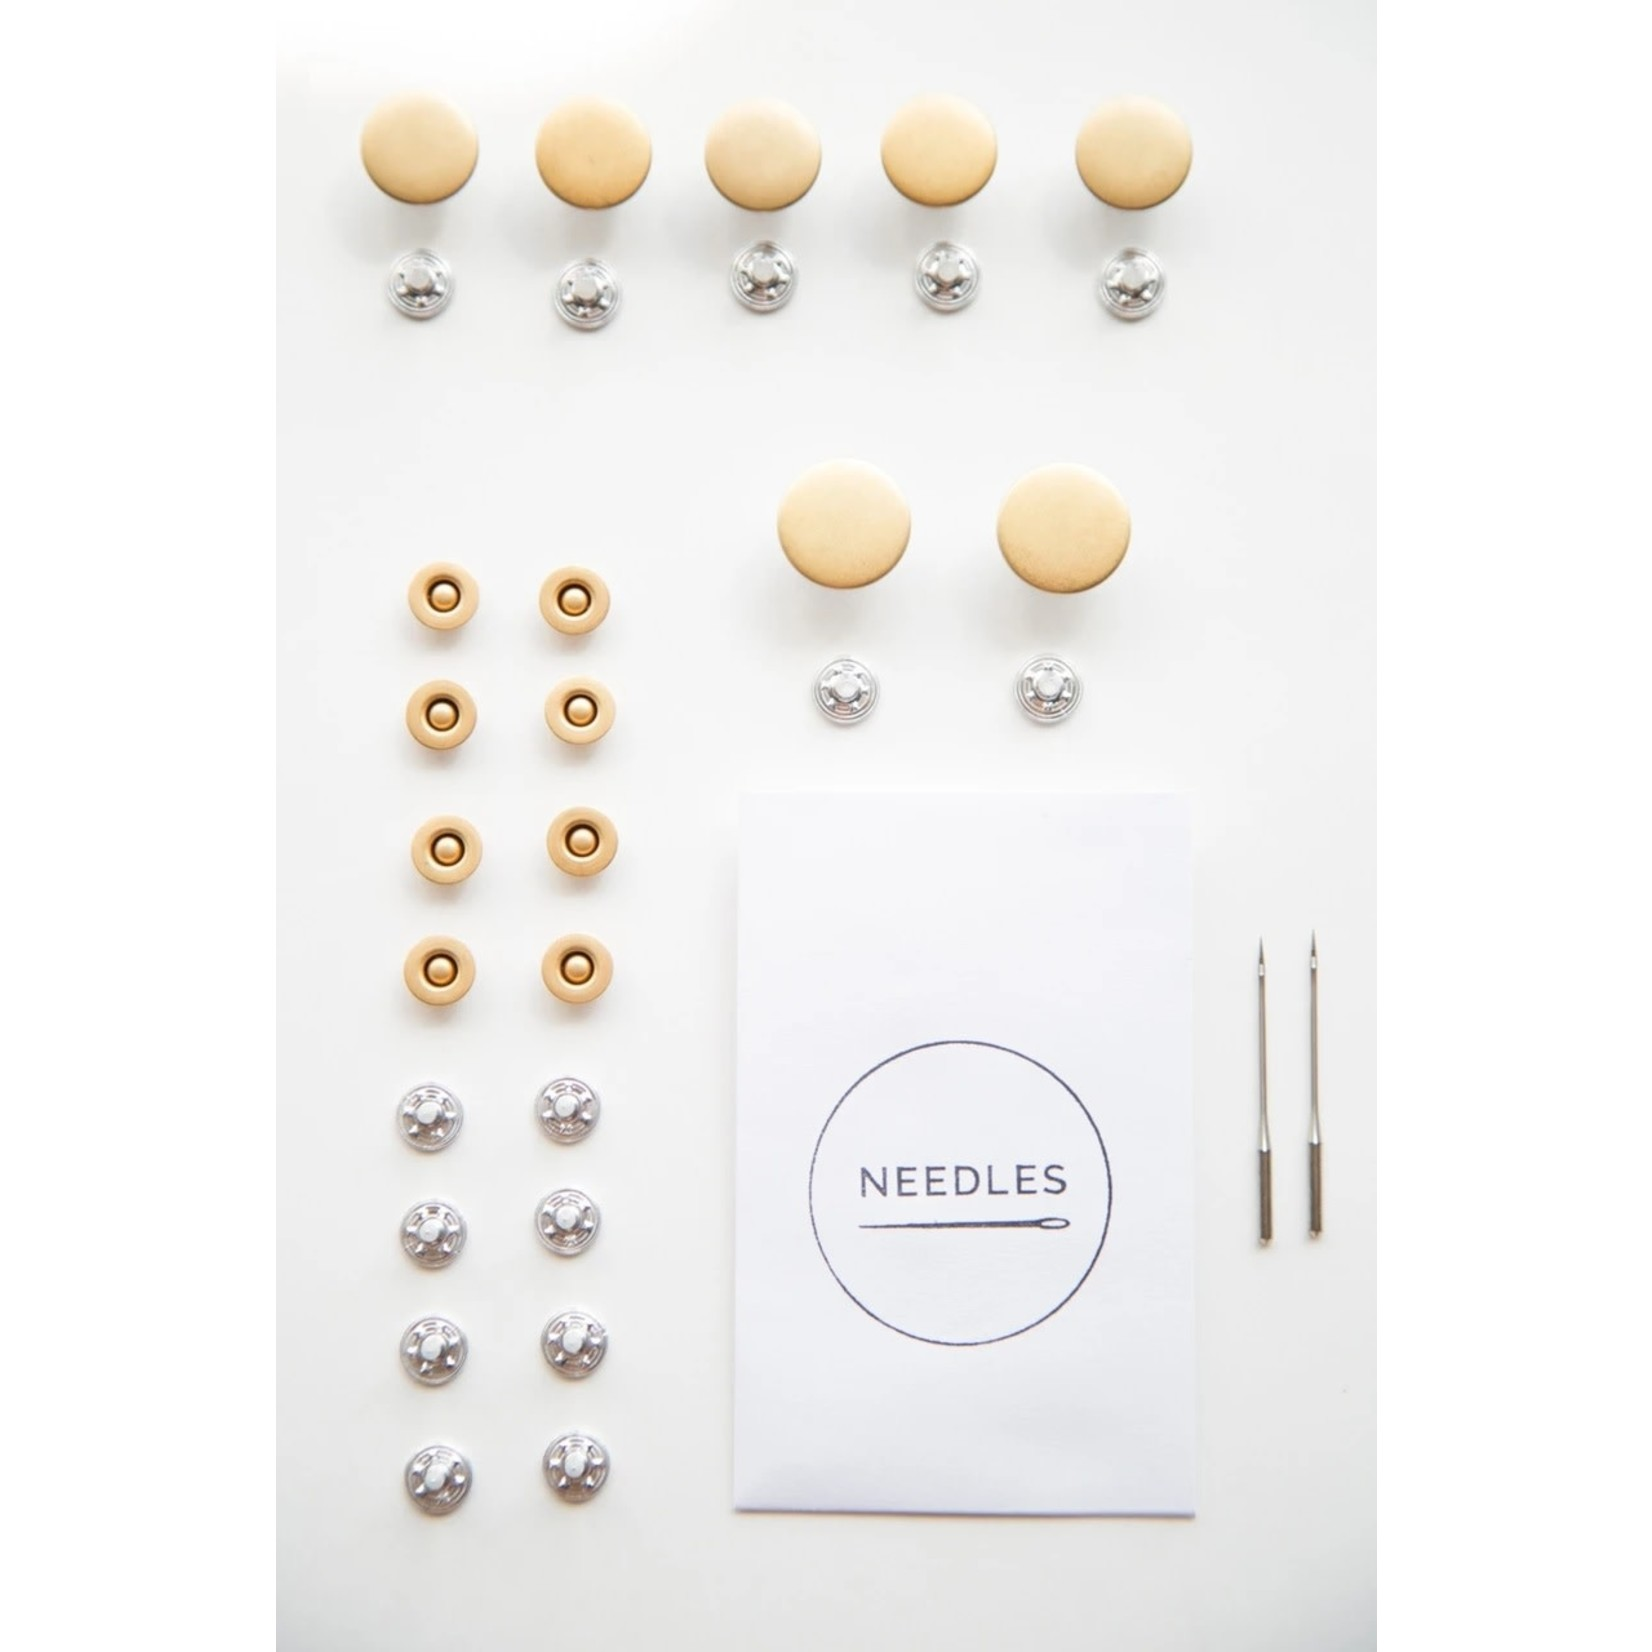 Closet Core Patterns Jeans, Button Fly Hardware Kit - Gold / Nickle / Brass